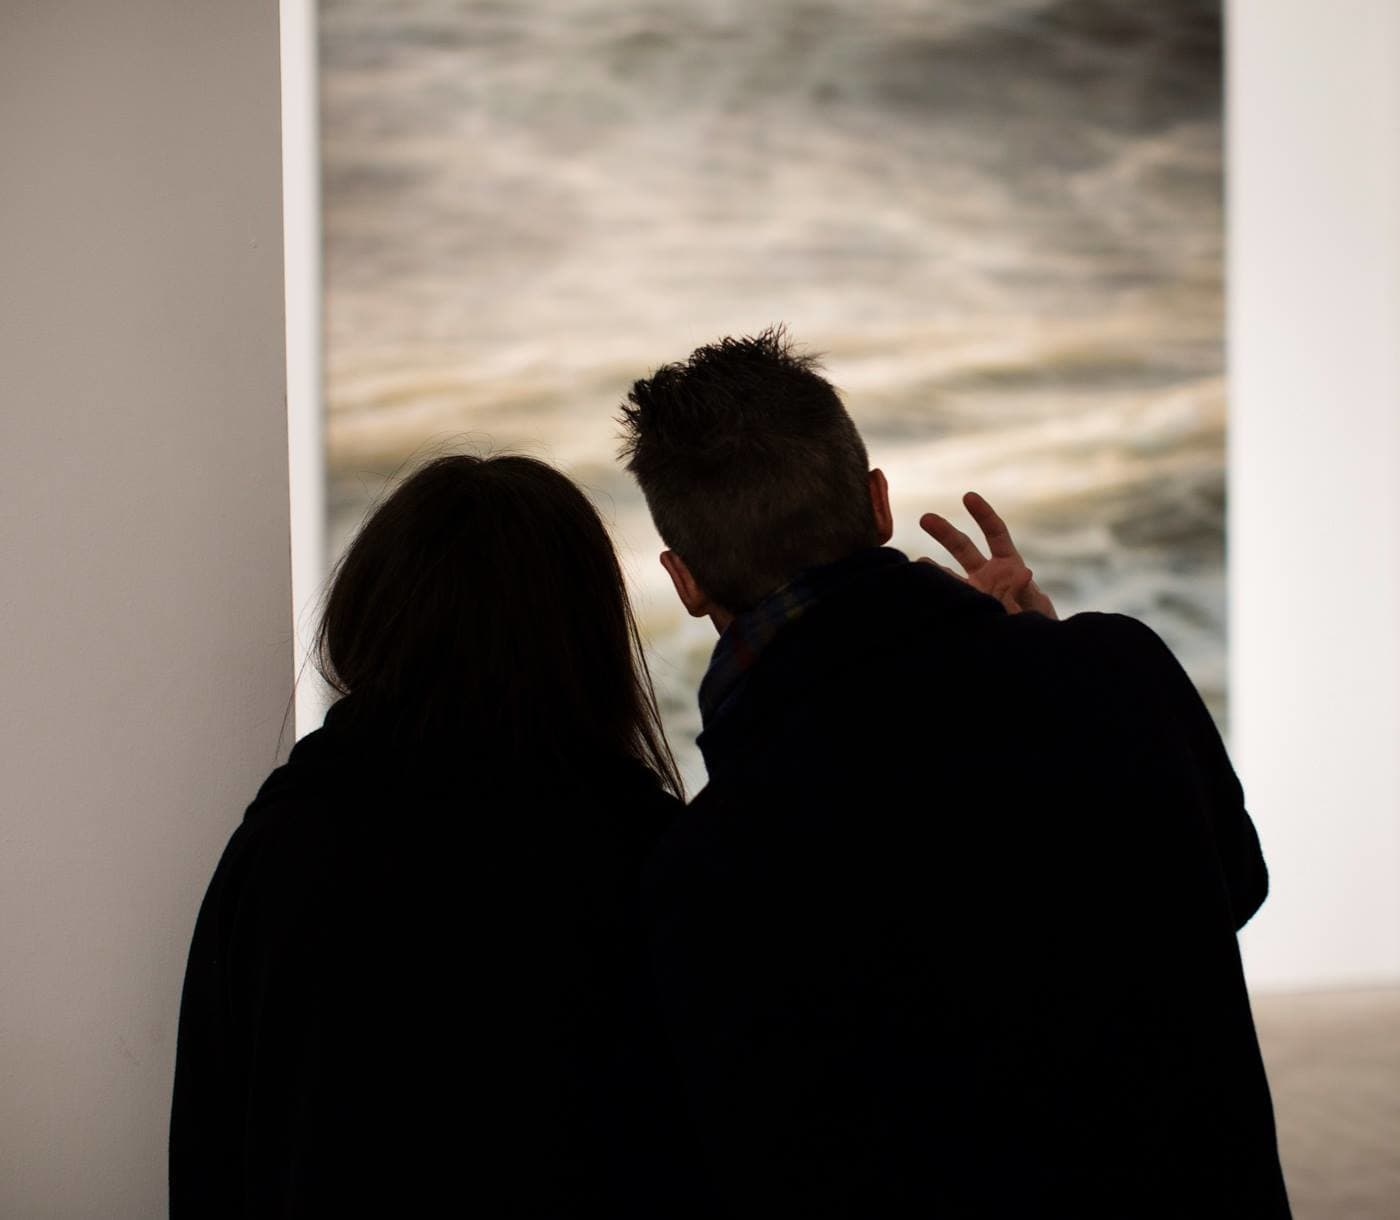 The Ran Ortner Project